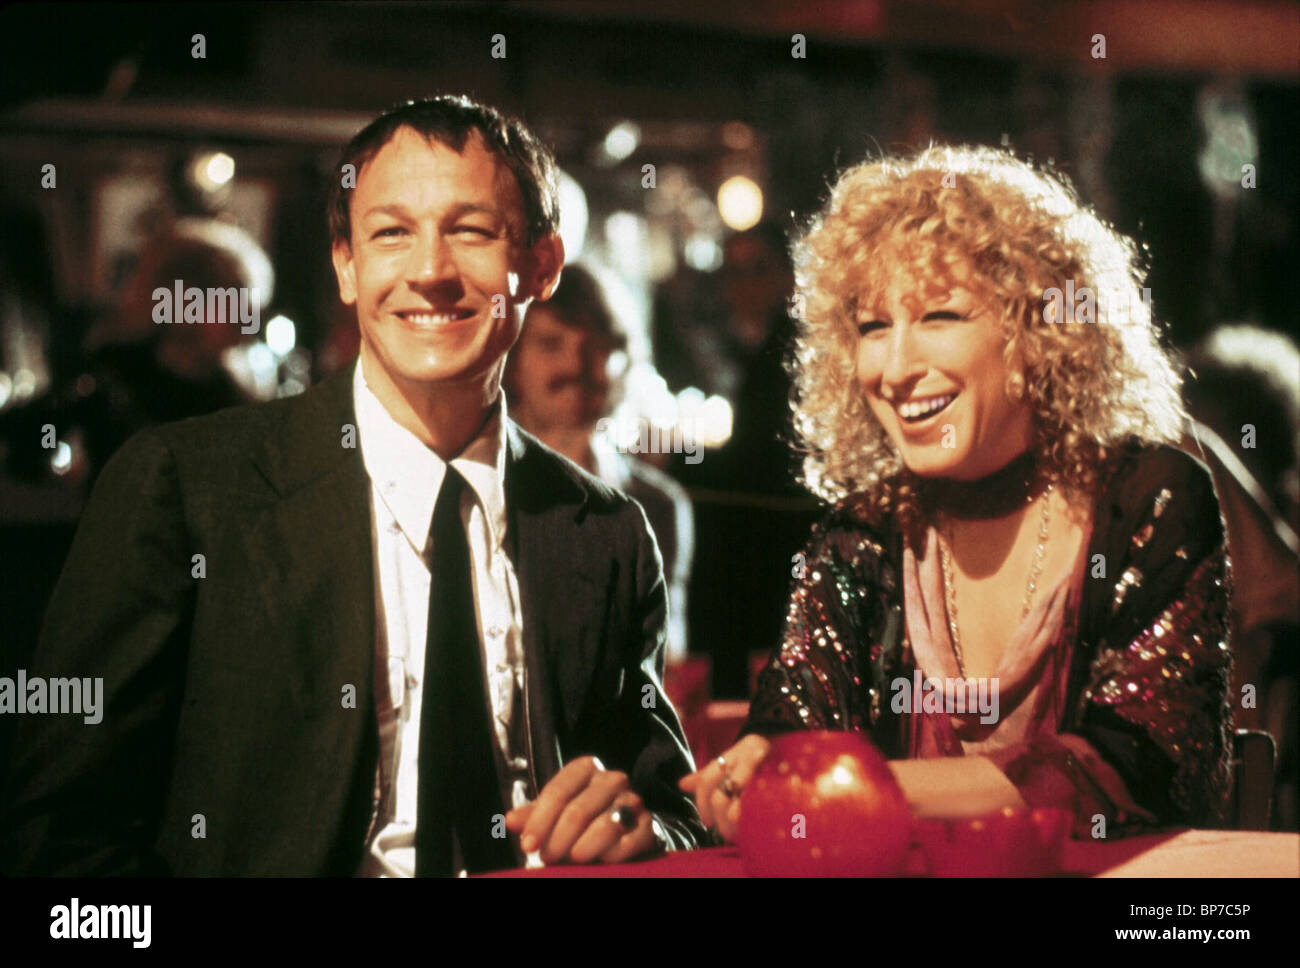 frederic forrest amp bette midler the rose 1979 stock photo